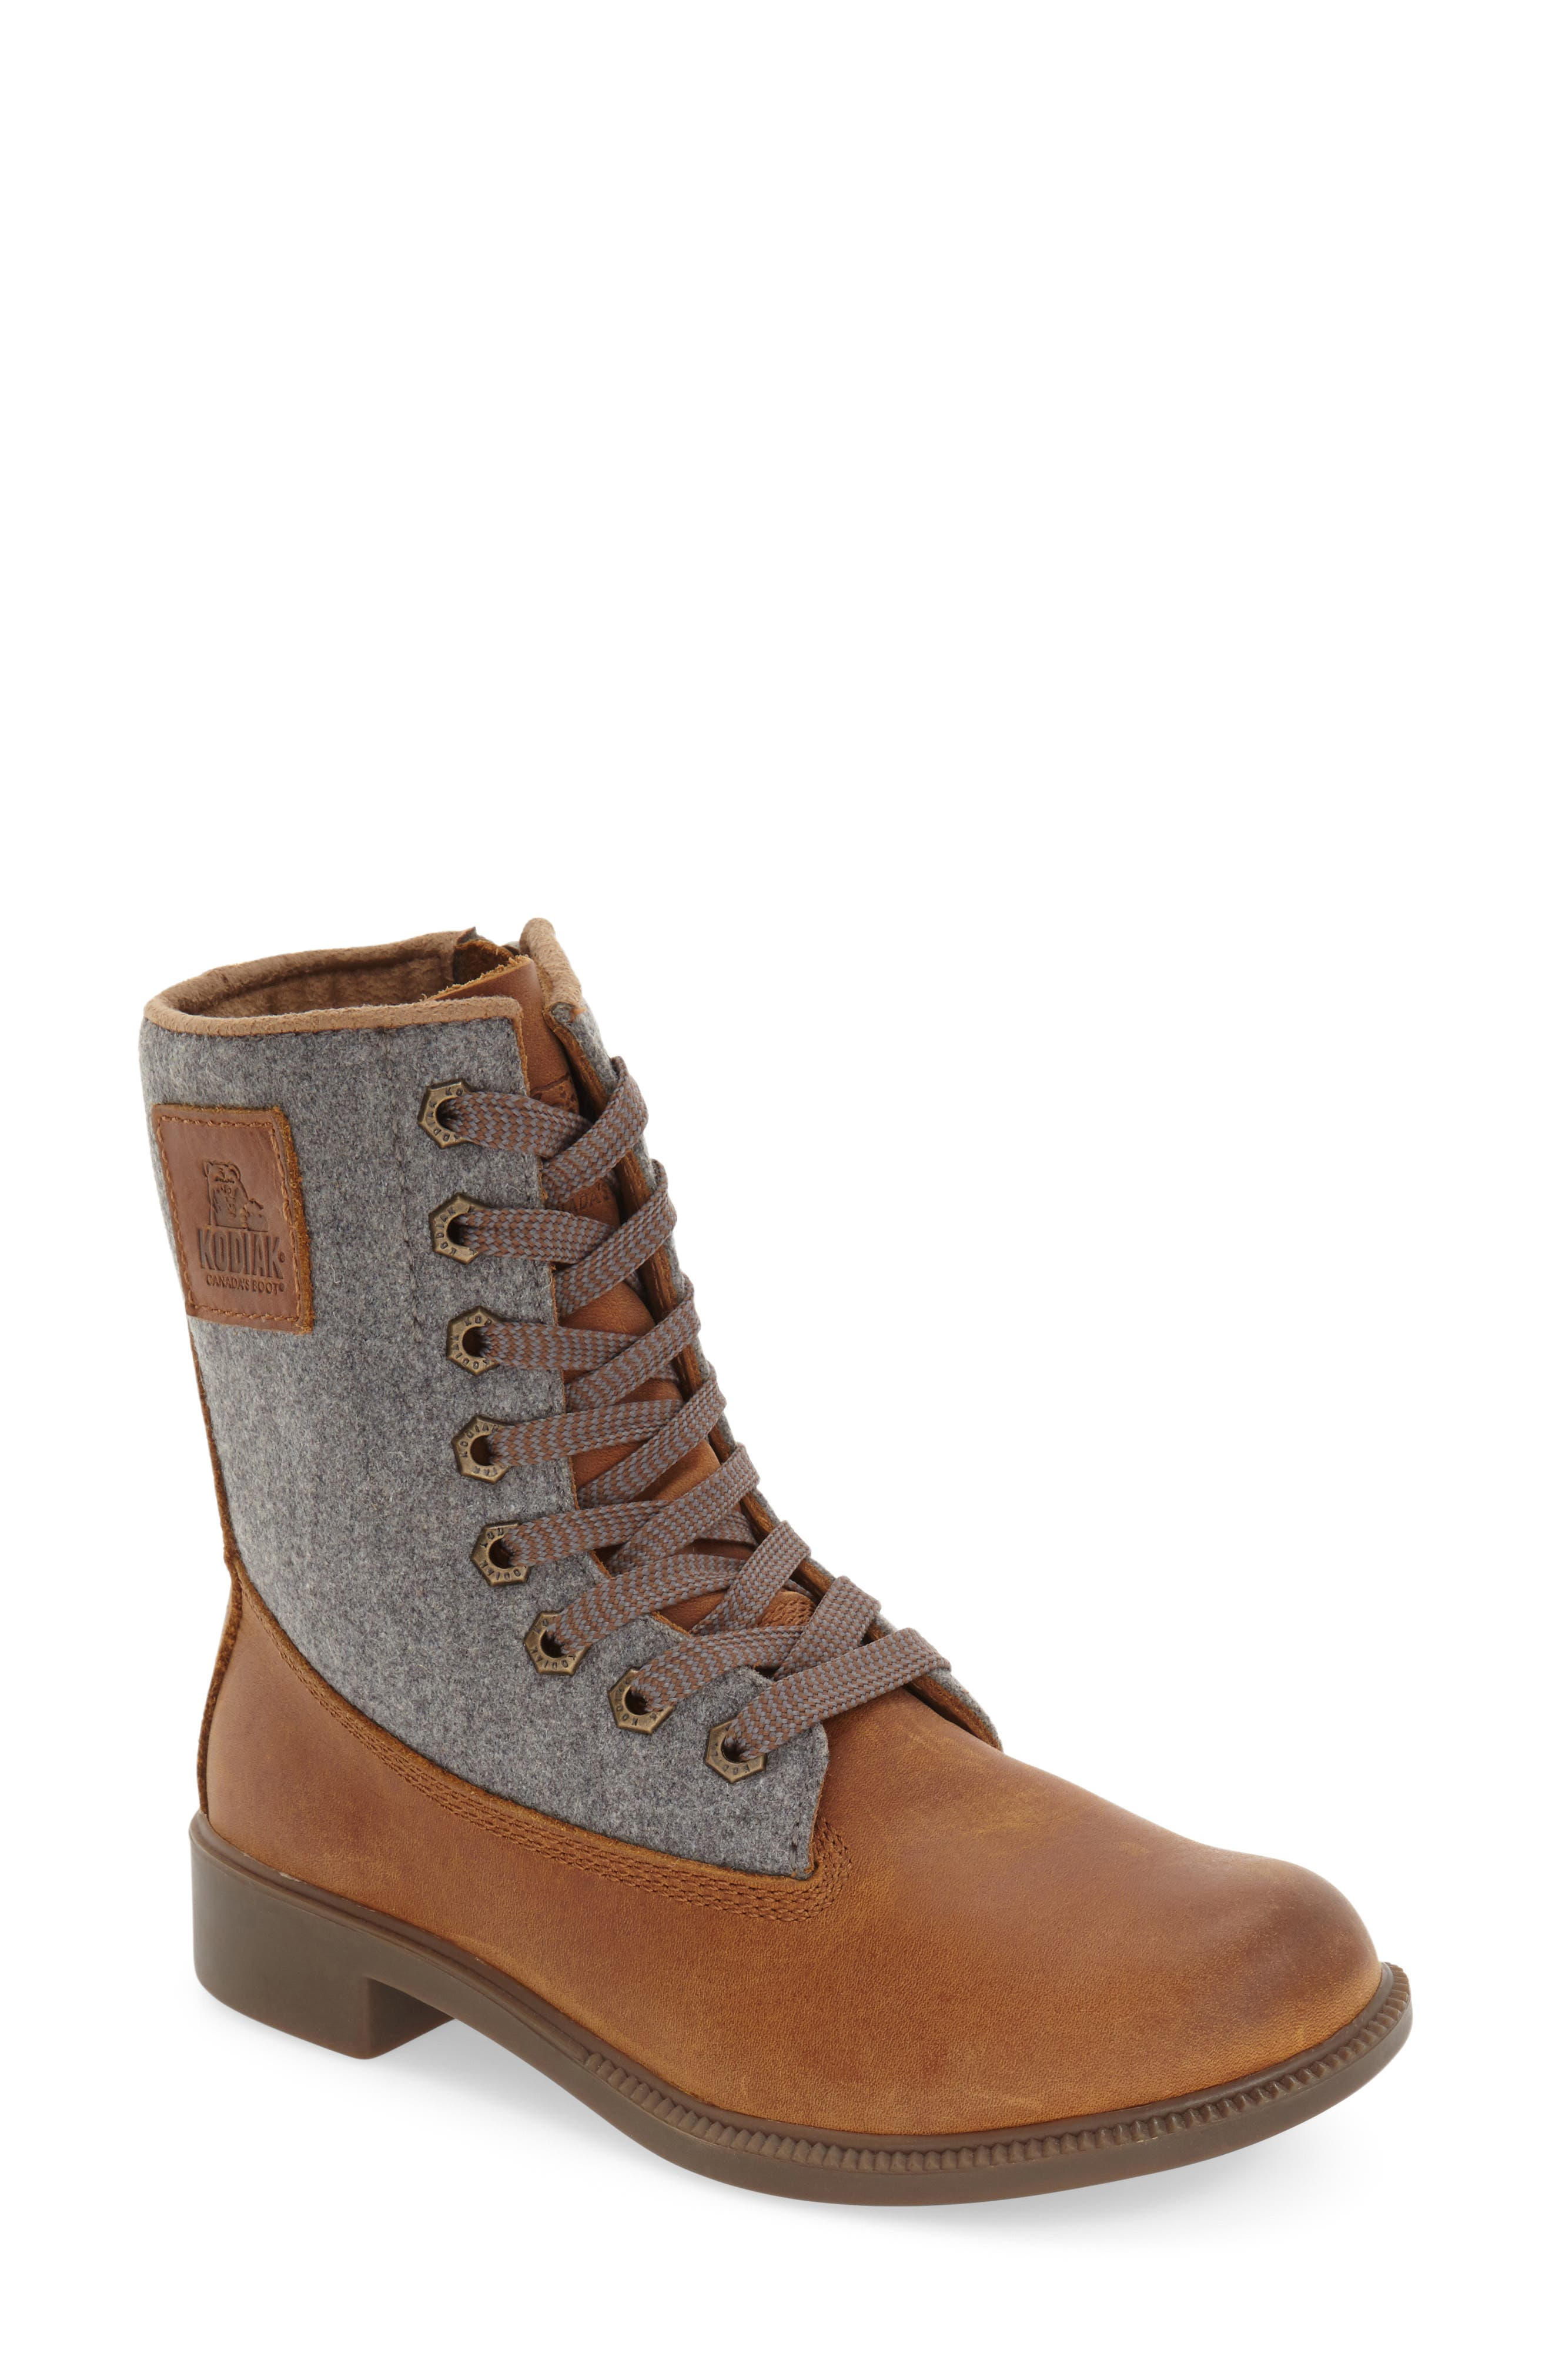 'Addison' Waterproof Insulated Zip Boot,                             Main thumbnail 1, color,                             240